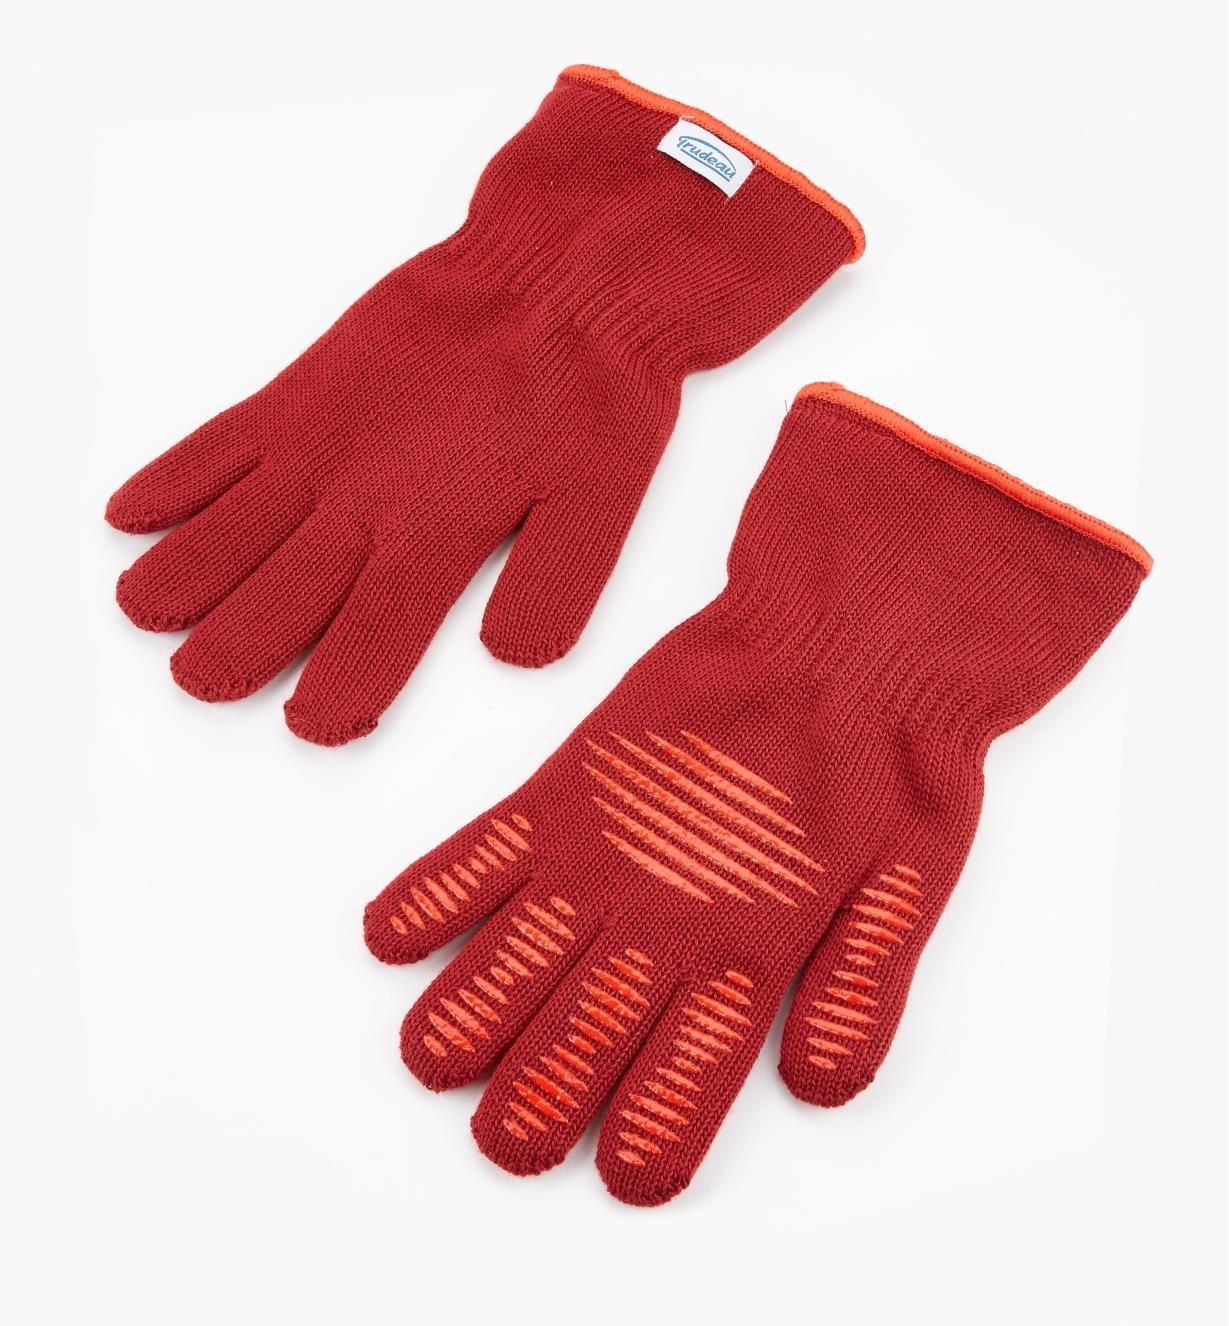 EV272 - Oven Gloves, Small (size 6 7 1/2)